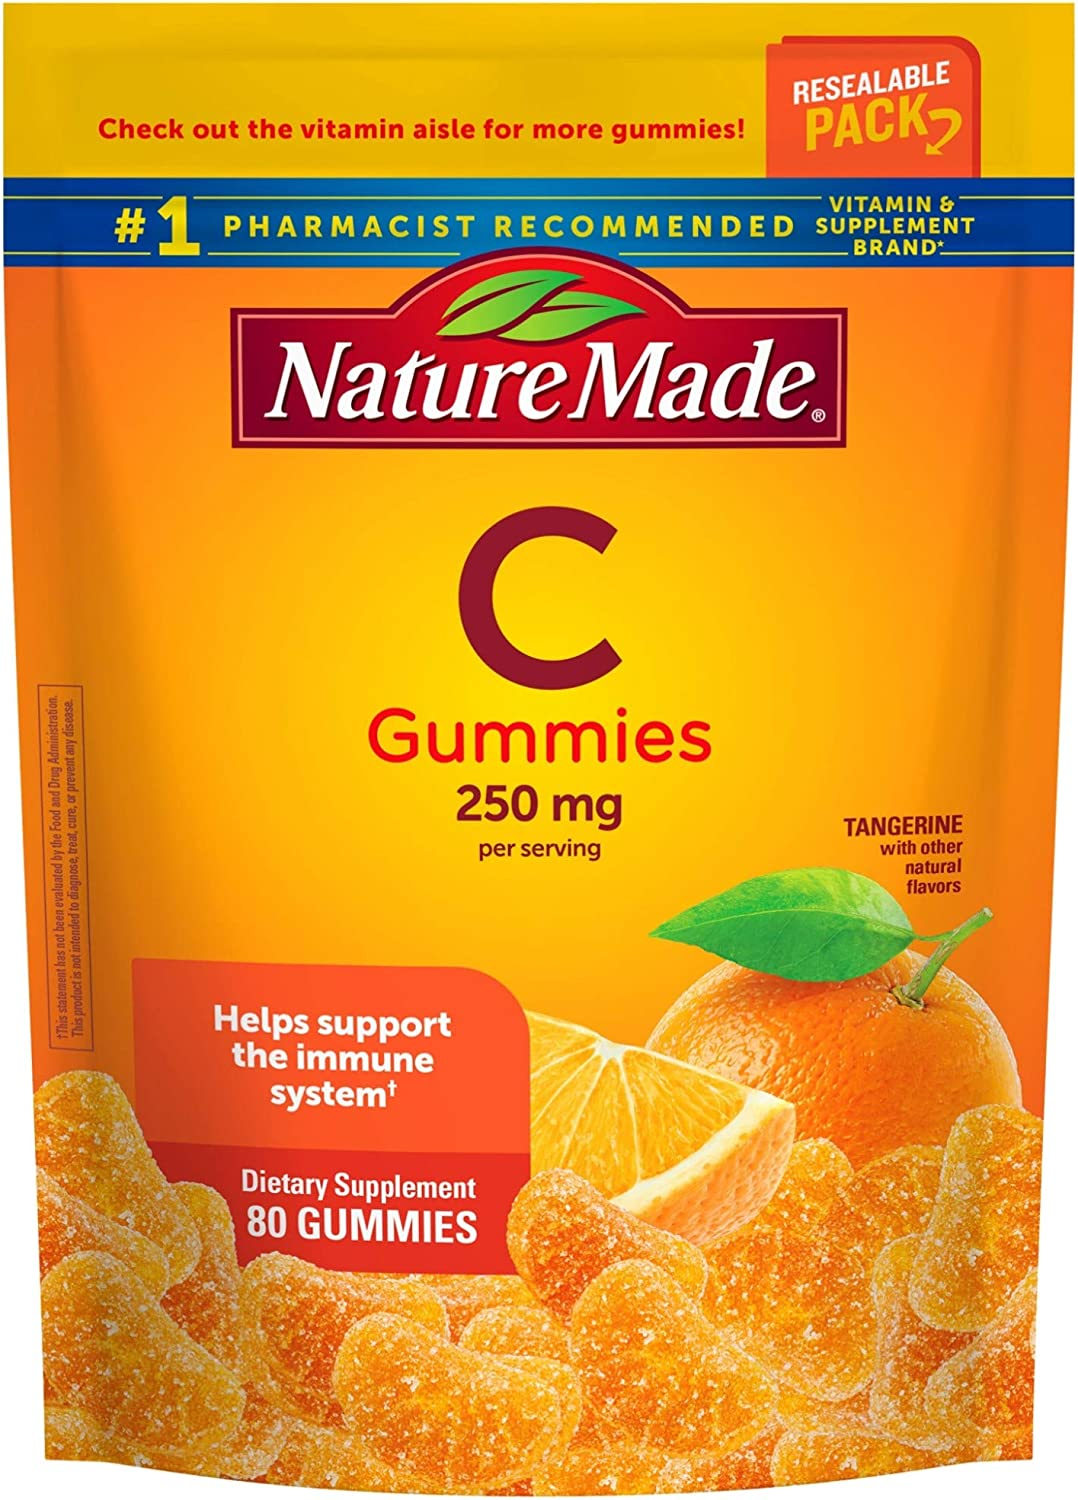 Nature Made Vitamin C 250 shipfree mg Immune Supplement All items free shipping for Supp Dietary